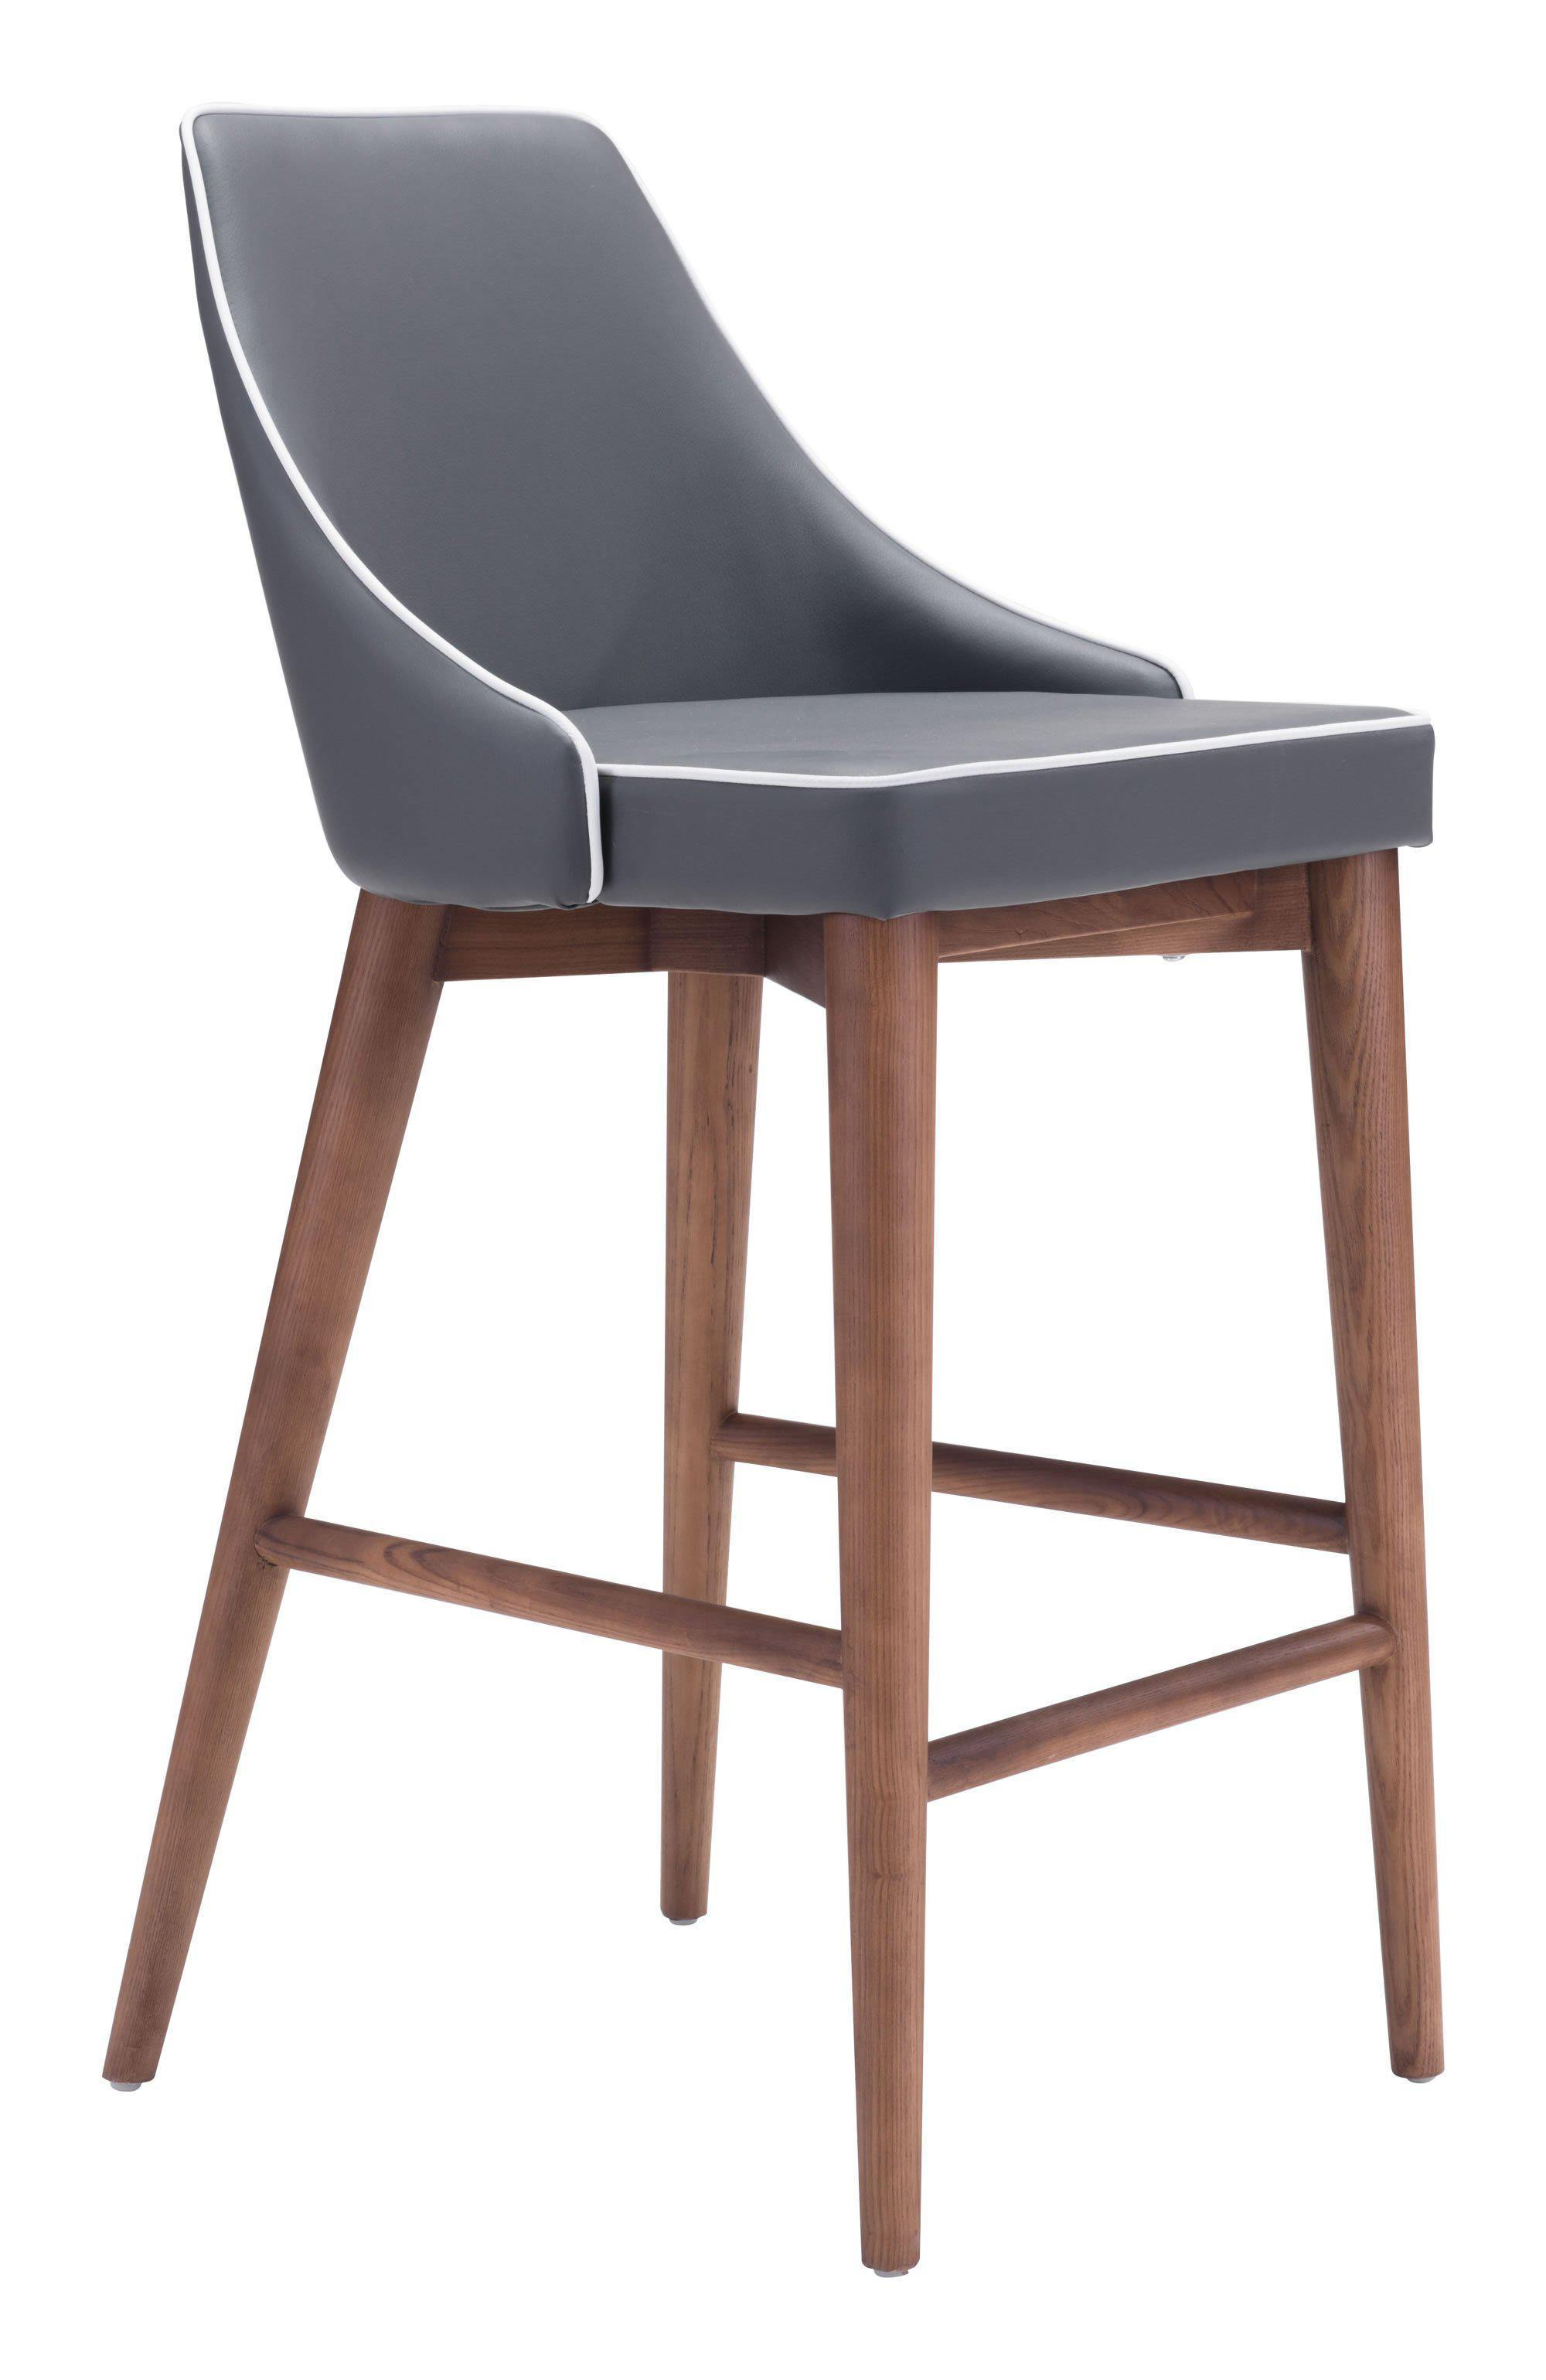 Zuo Modern Moor Counter Bar Stool-Zuo Modern-Happy Home Bars